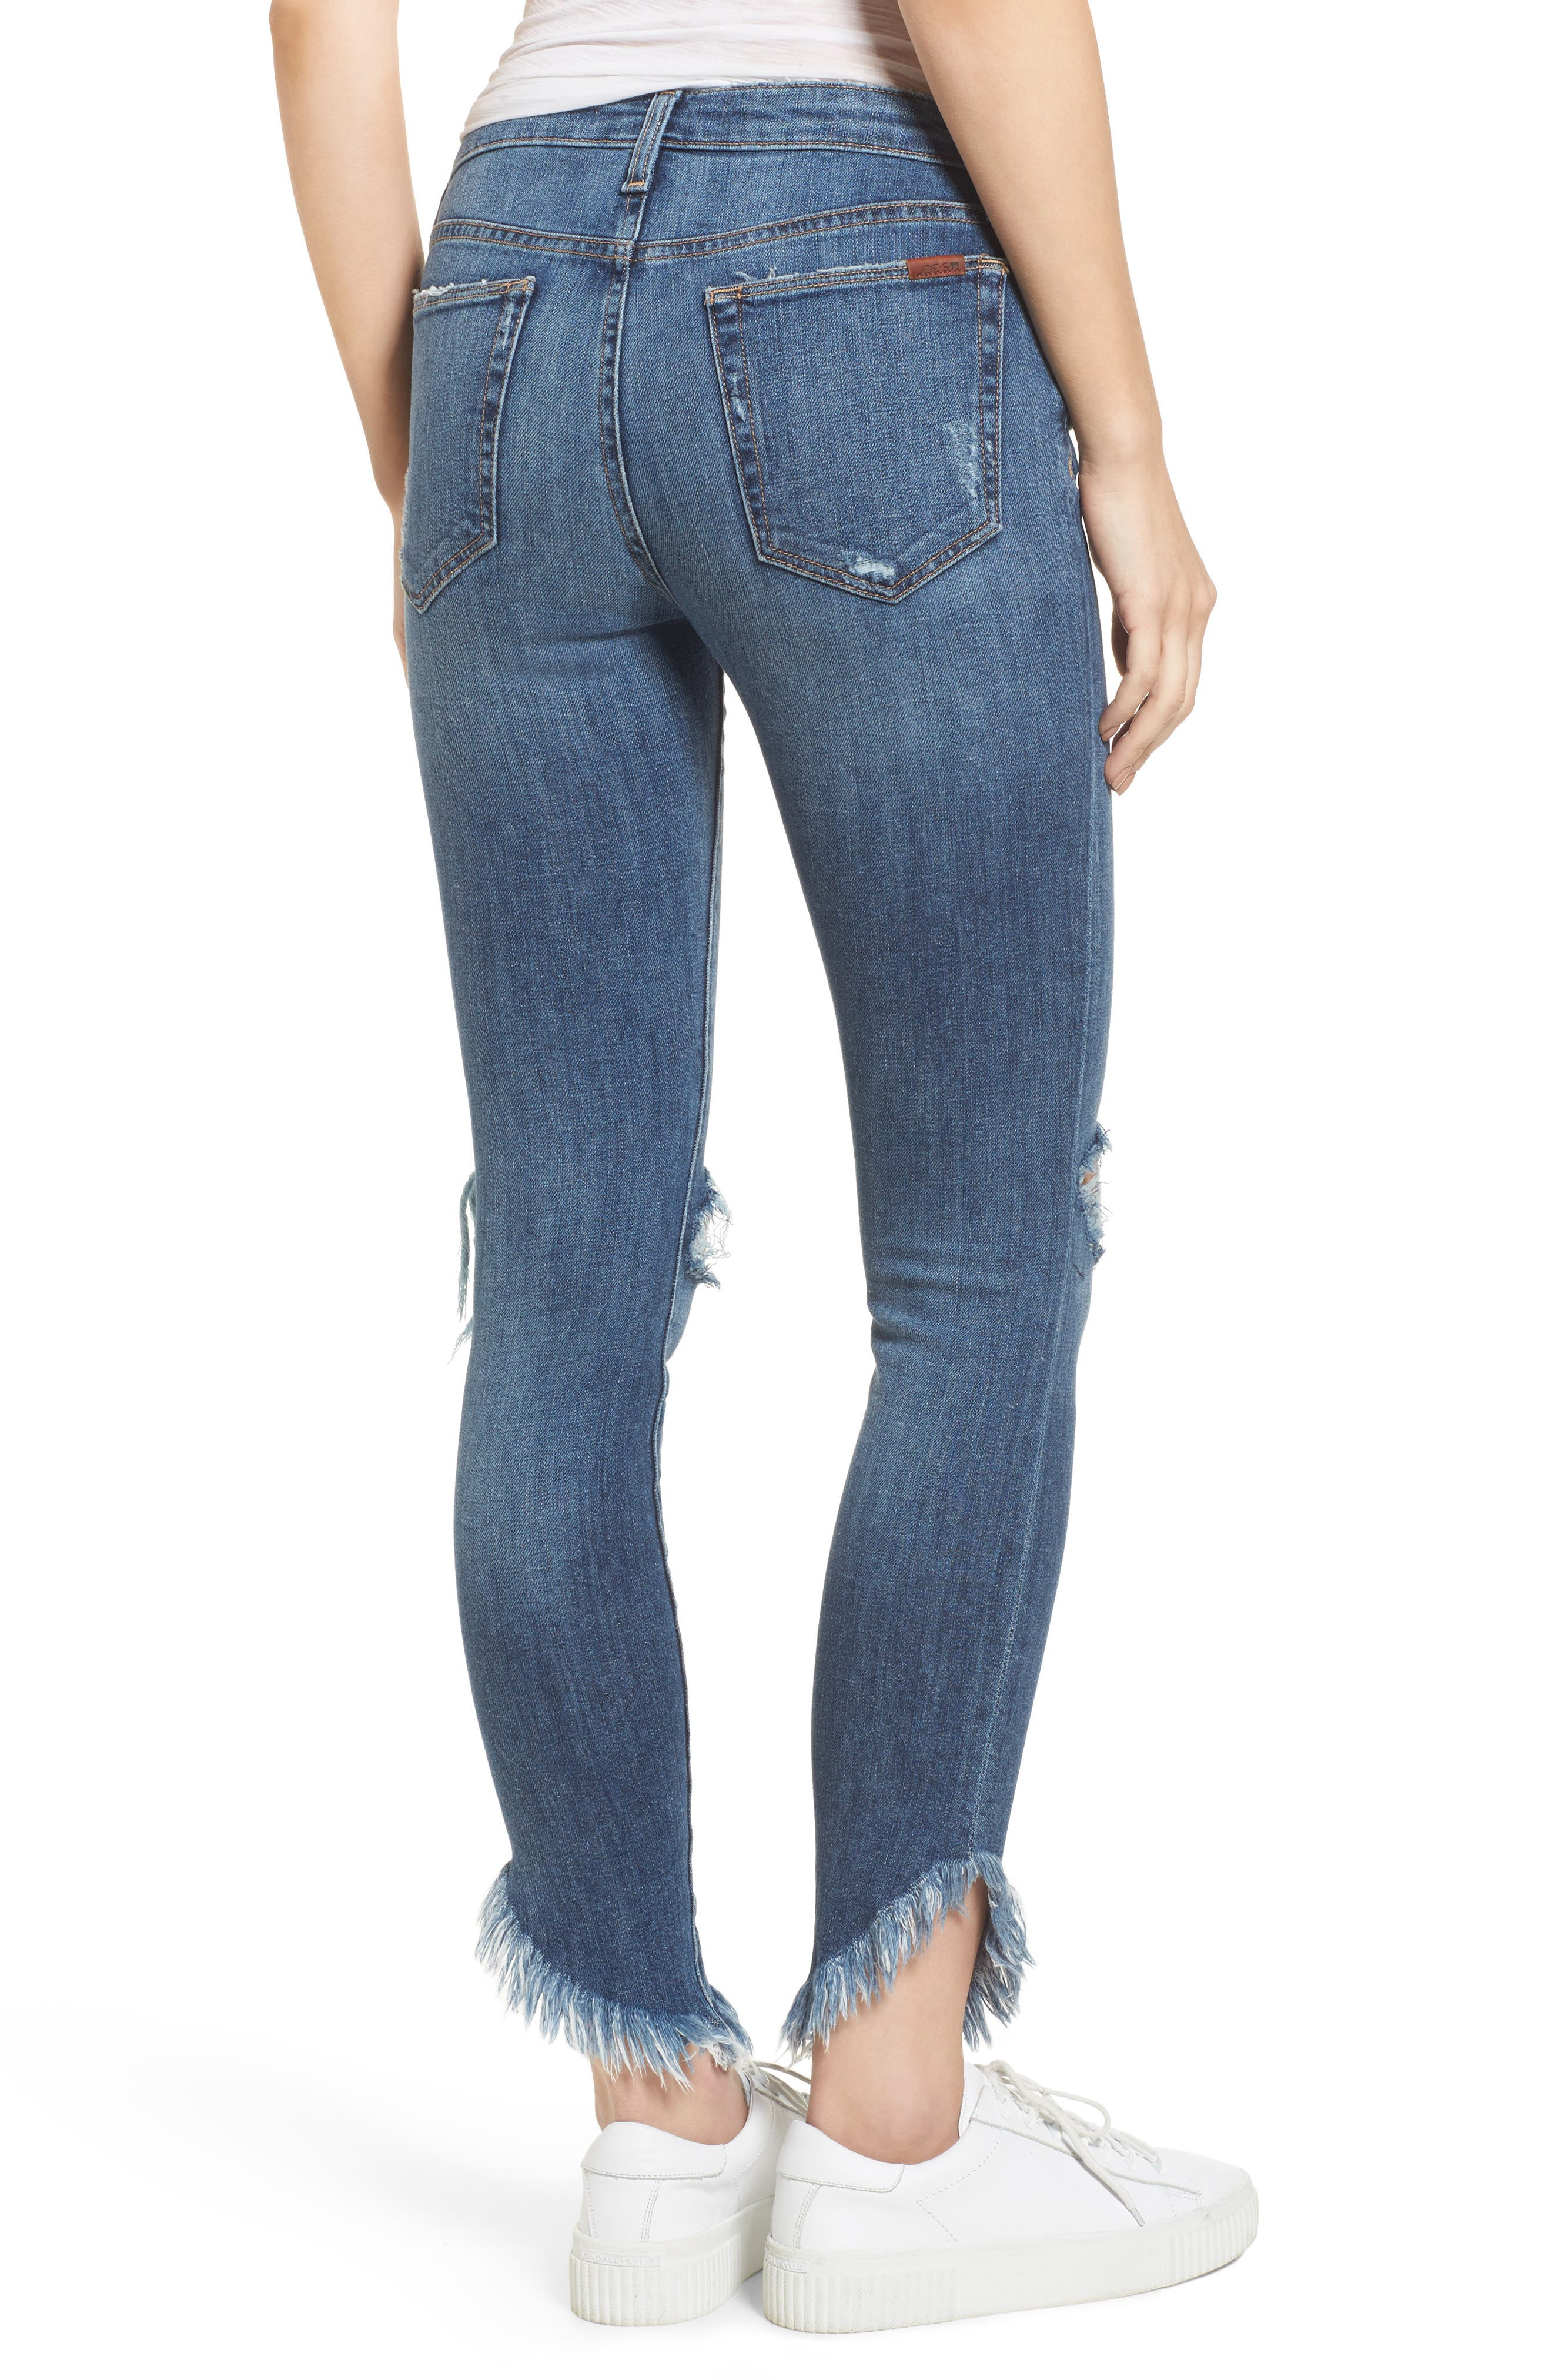 Icon Ankle Skinny Jeans,                             Alternate thumbnail 2, color,                             400